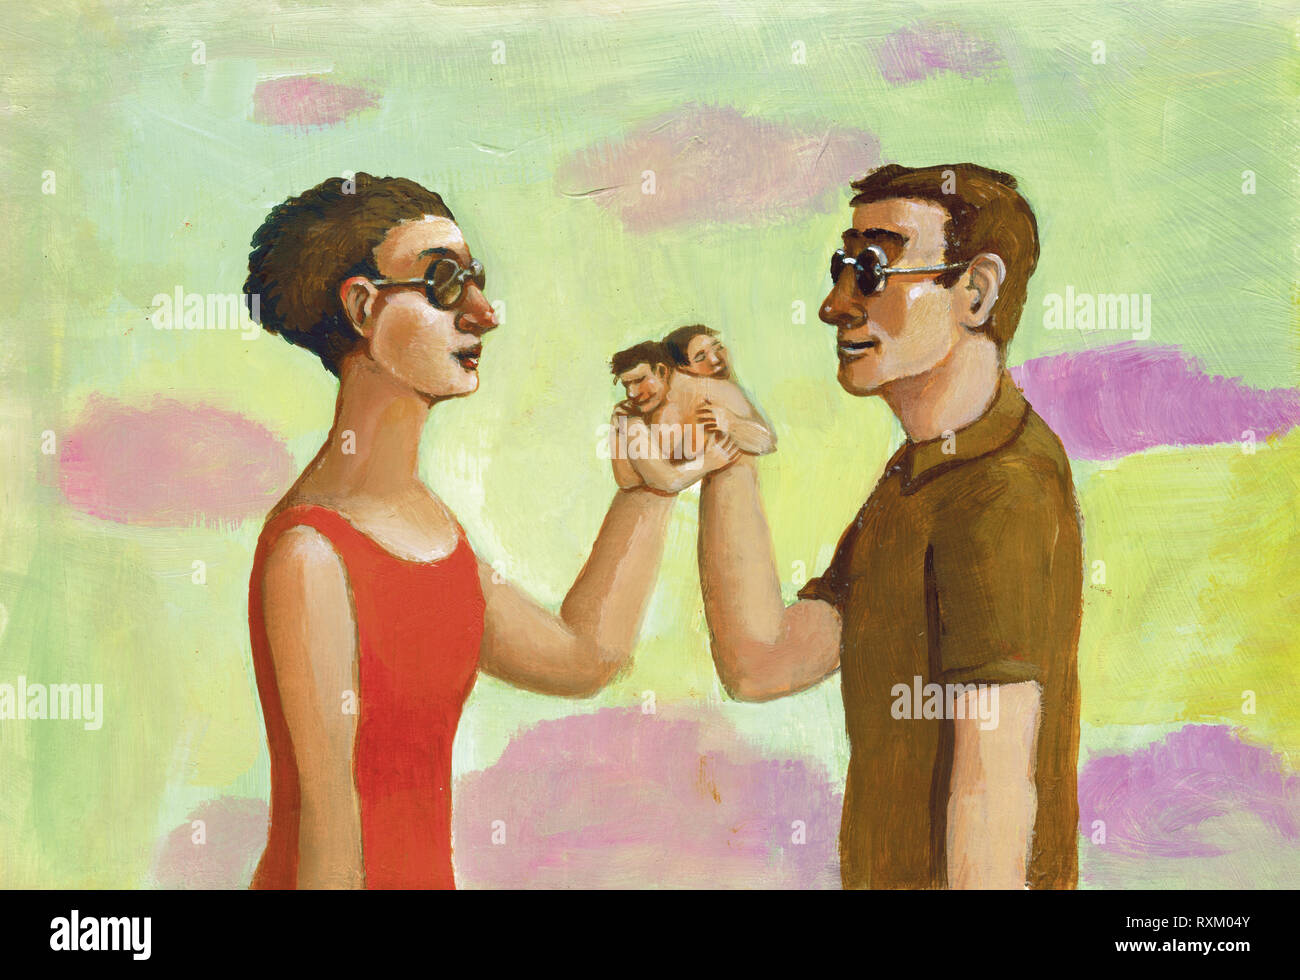 a couple has not the dark glasses of the seeing, to recognize their hands  are turned into people that are embraced surreal metaphisical acrylic paint - Stock Image